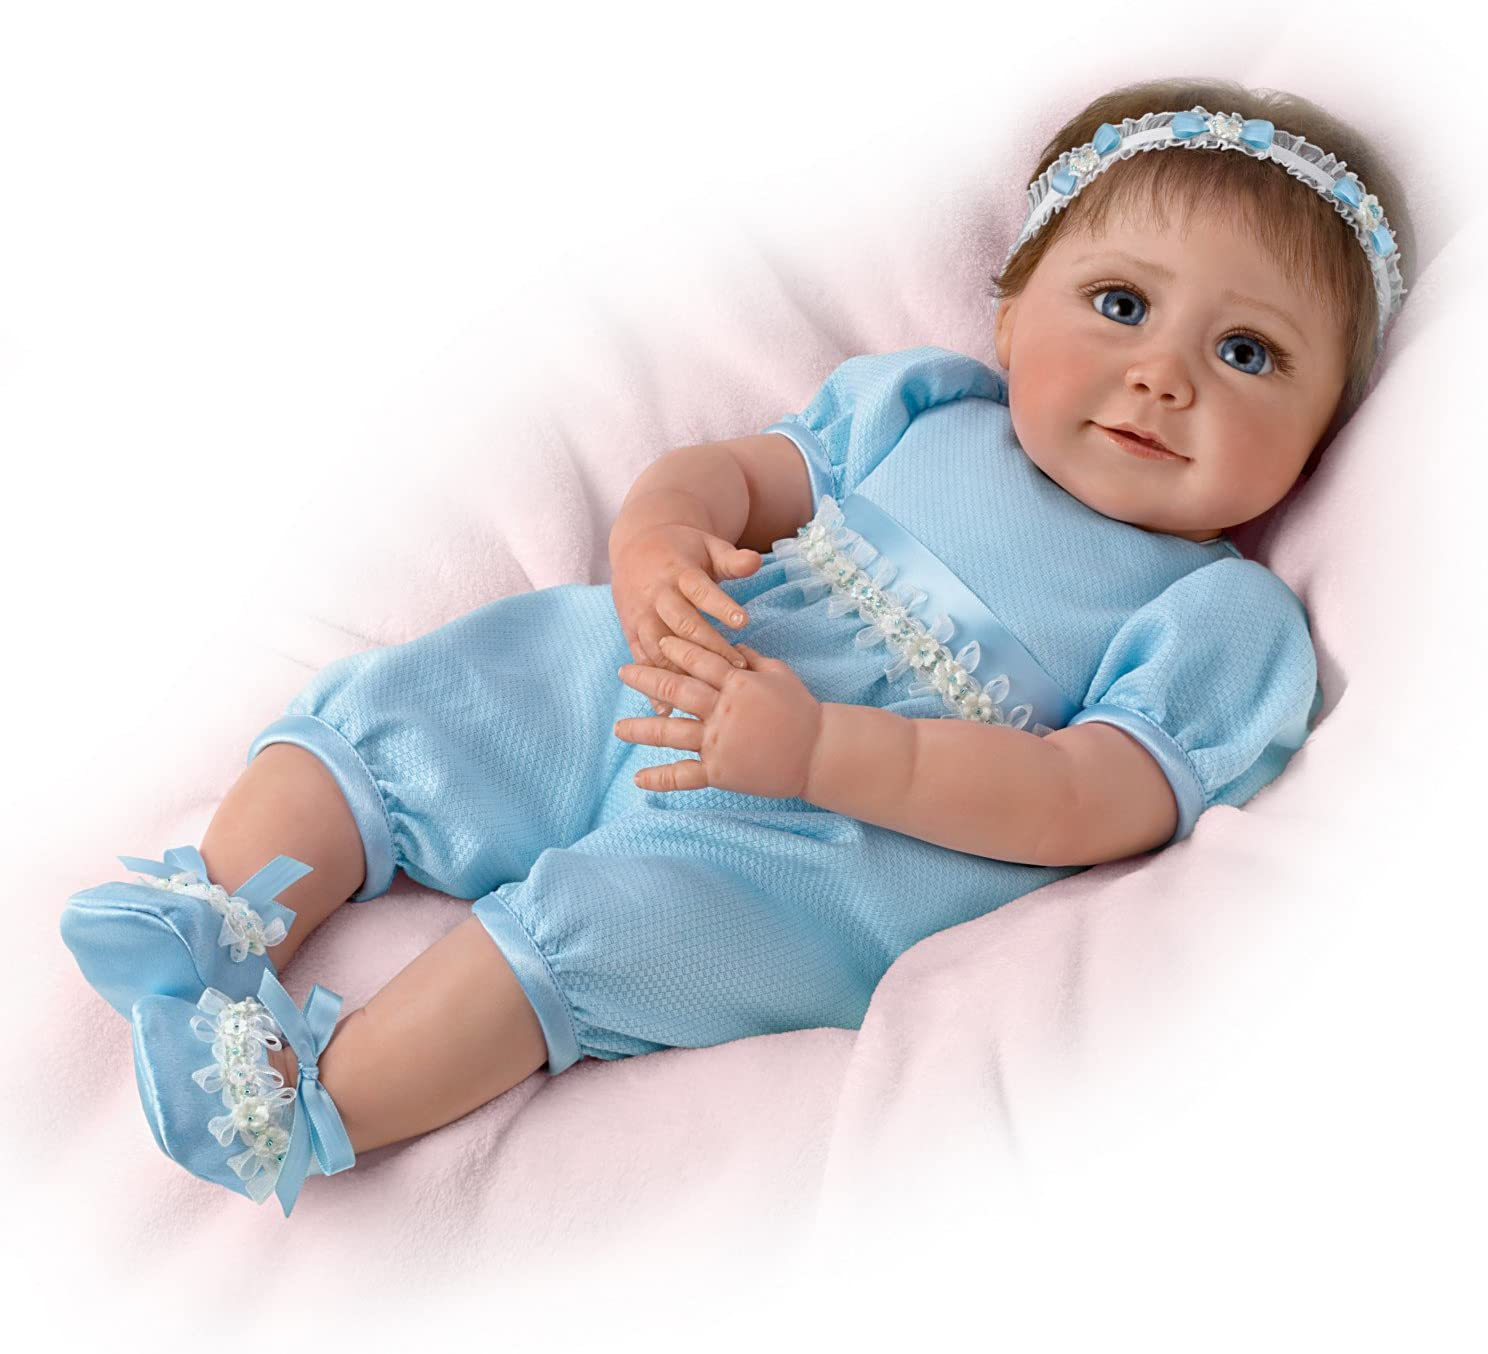 The Ashton-Drake Galleries Sherry Miller Lifelike Baby Doll with Hand Rooted Hair by